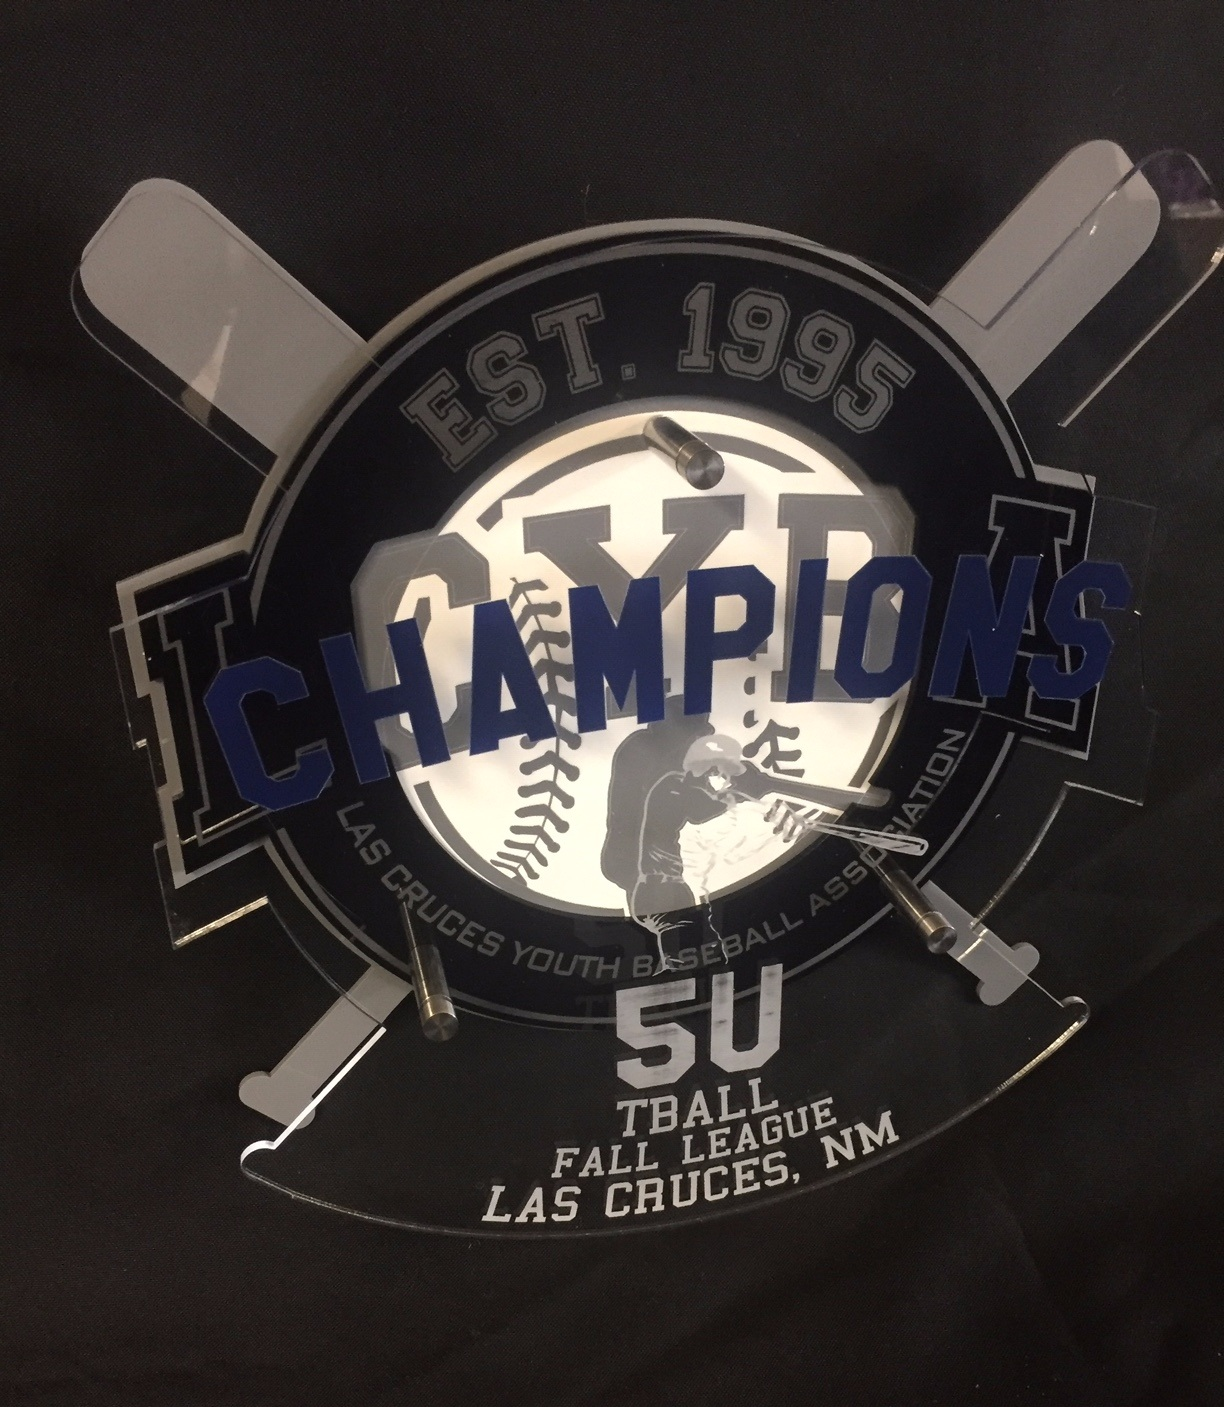 Las Cruces Youth Baseball Association - Champion Award  Contact us for pricing information.